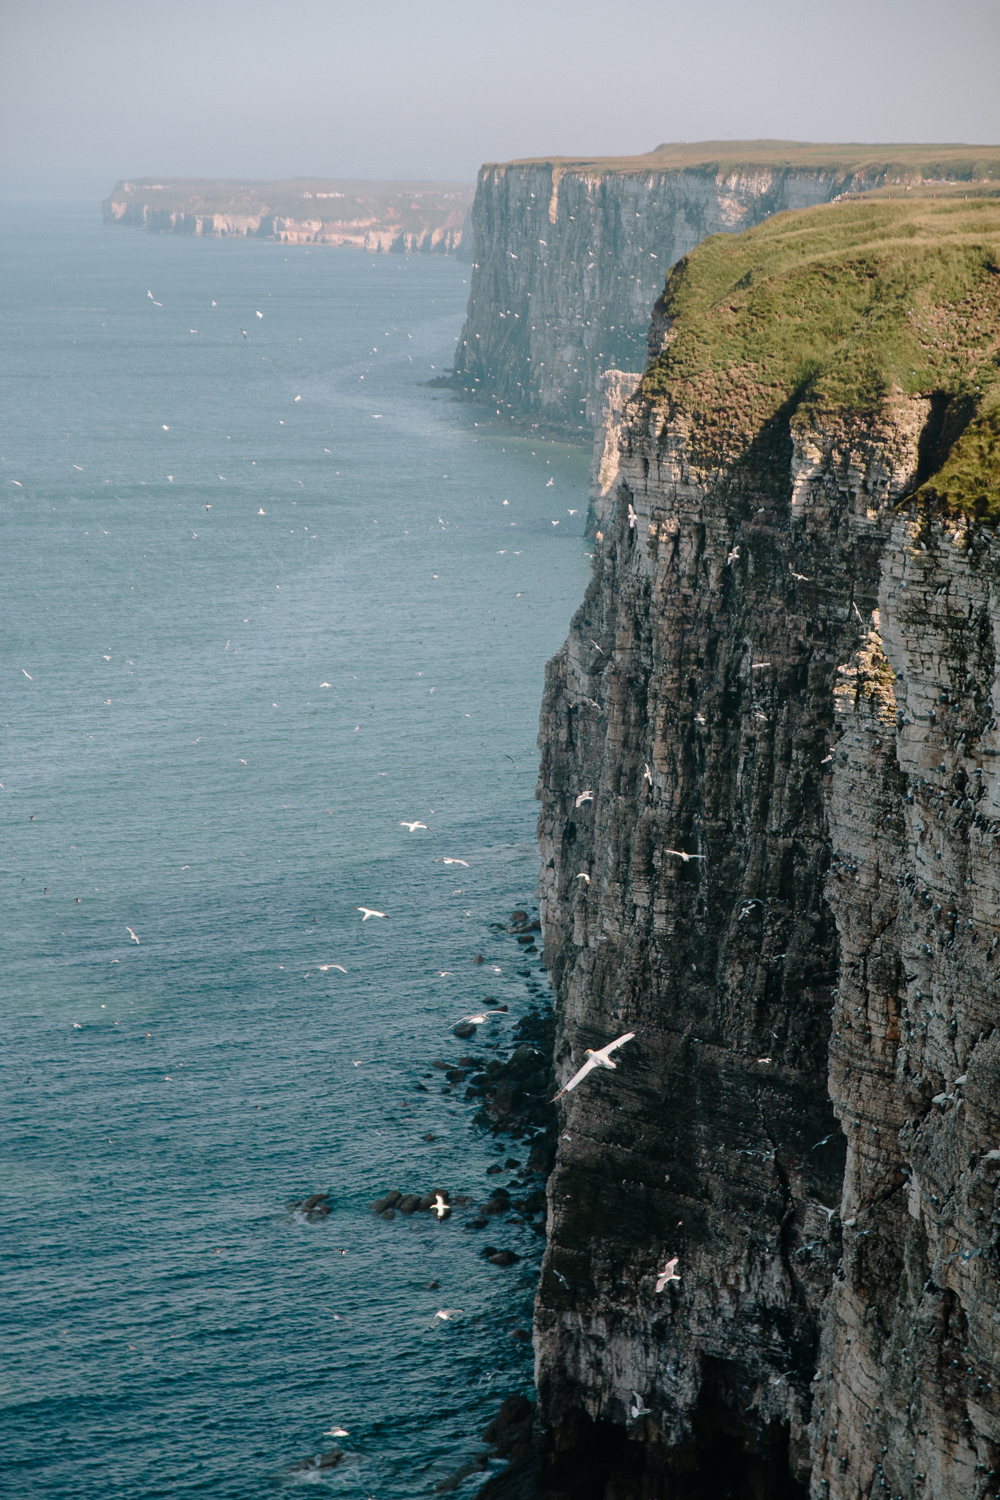 Birds on Cliffs at RSPB Bempton Cliffs in East Yorkshire